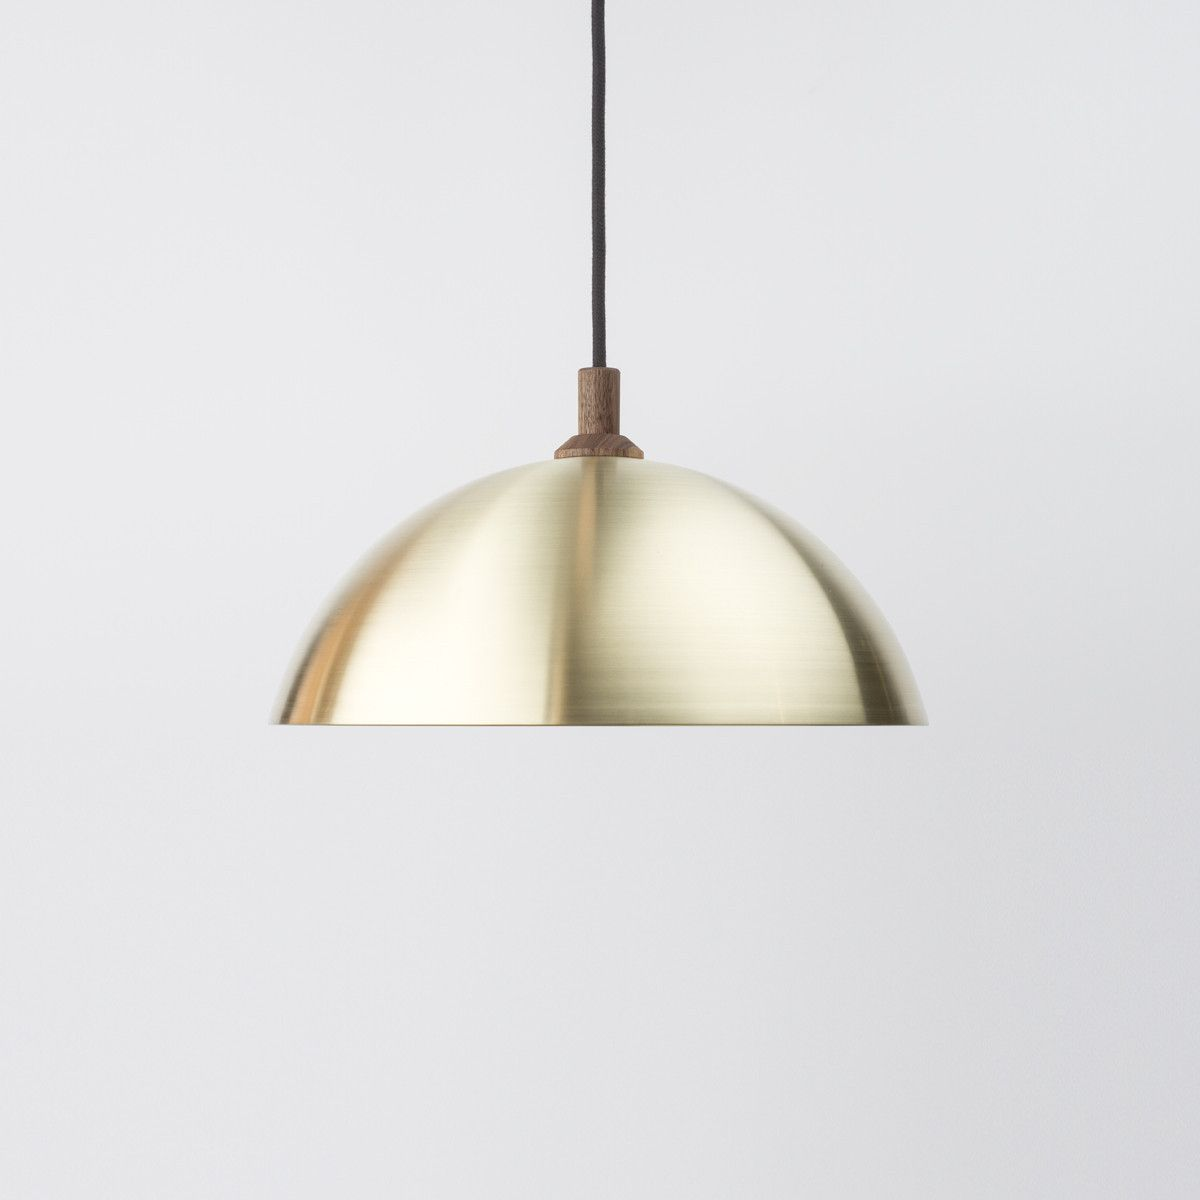 14 half dome pendant allied maker lighting pinterest half based in new york allied maker is a contemporary lighting design and manufacturing studio specializing in handcrafted lighting fixtures arubaitofo Choice Image